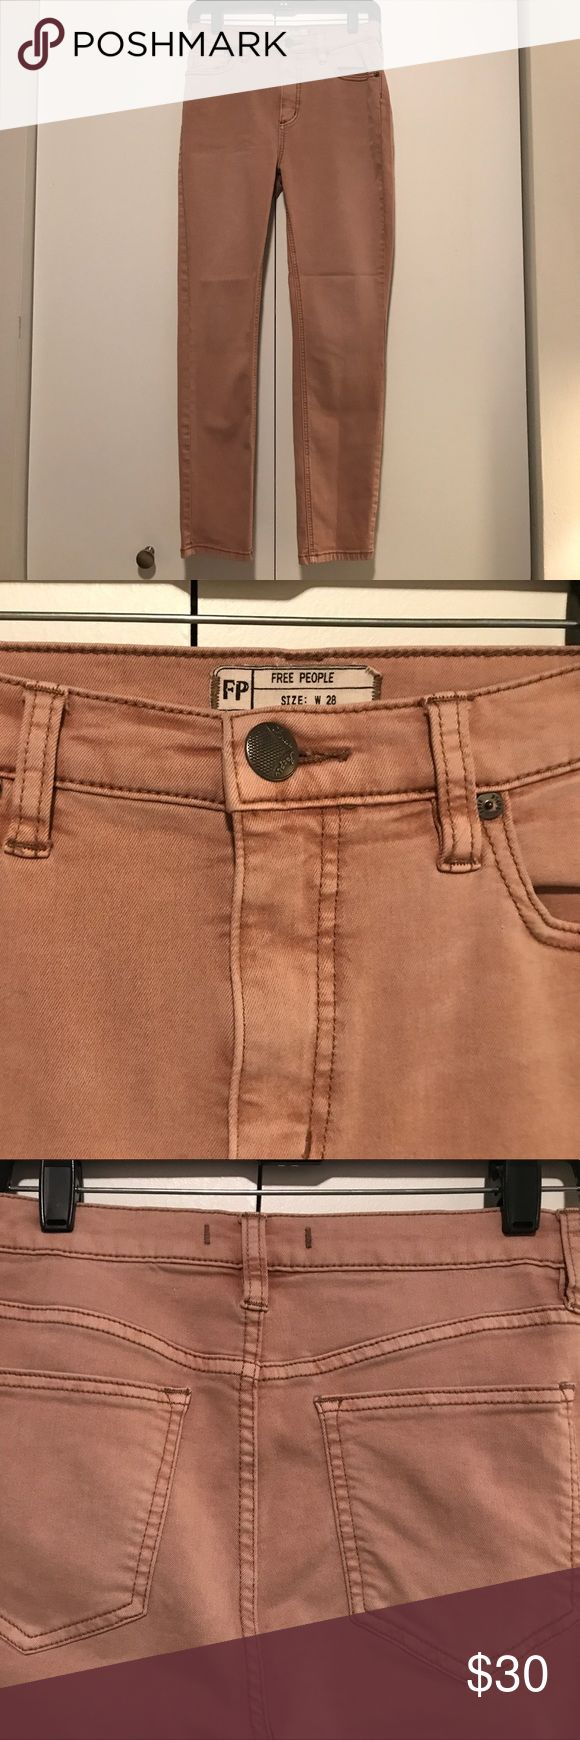 Free People Jeans, skinny fit, size 28 Free People jeans in a dusty rose color. Skinny fit, with 2% spandex. Size 28 Free People Jeans Skinny